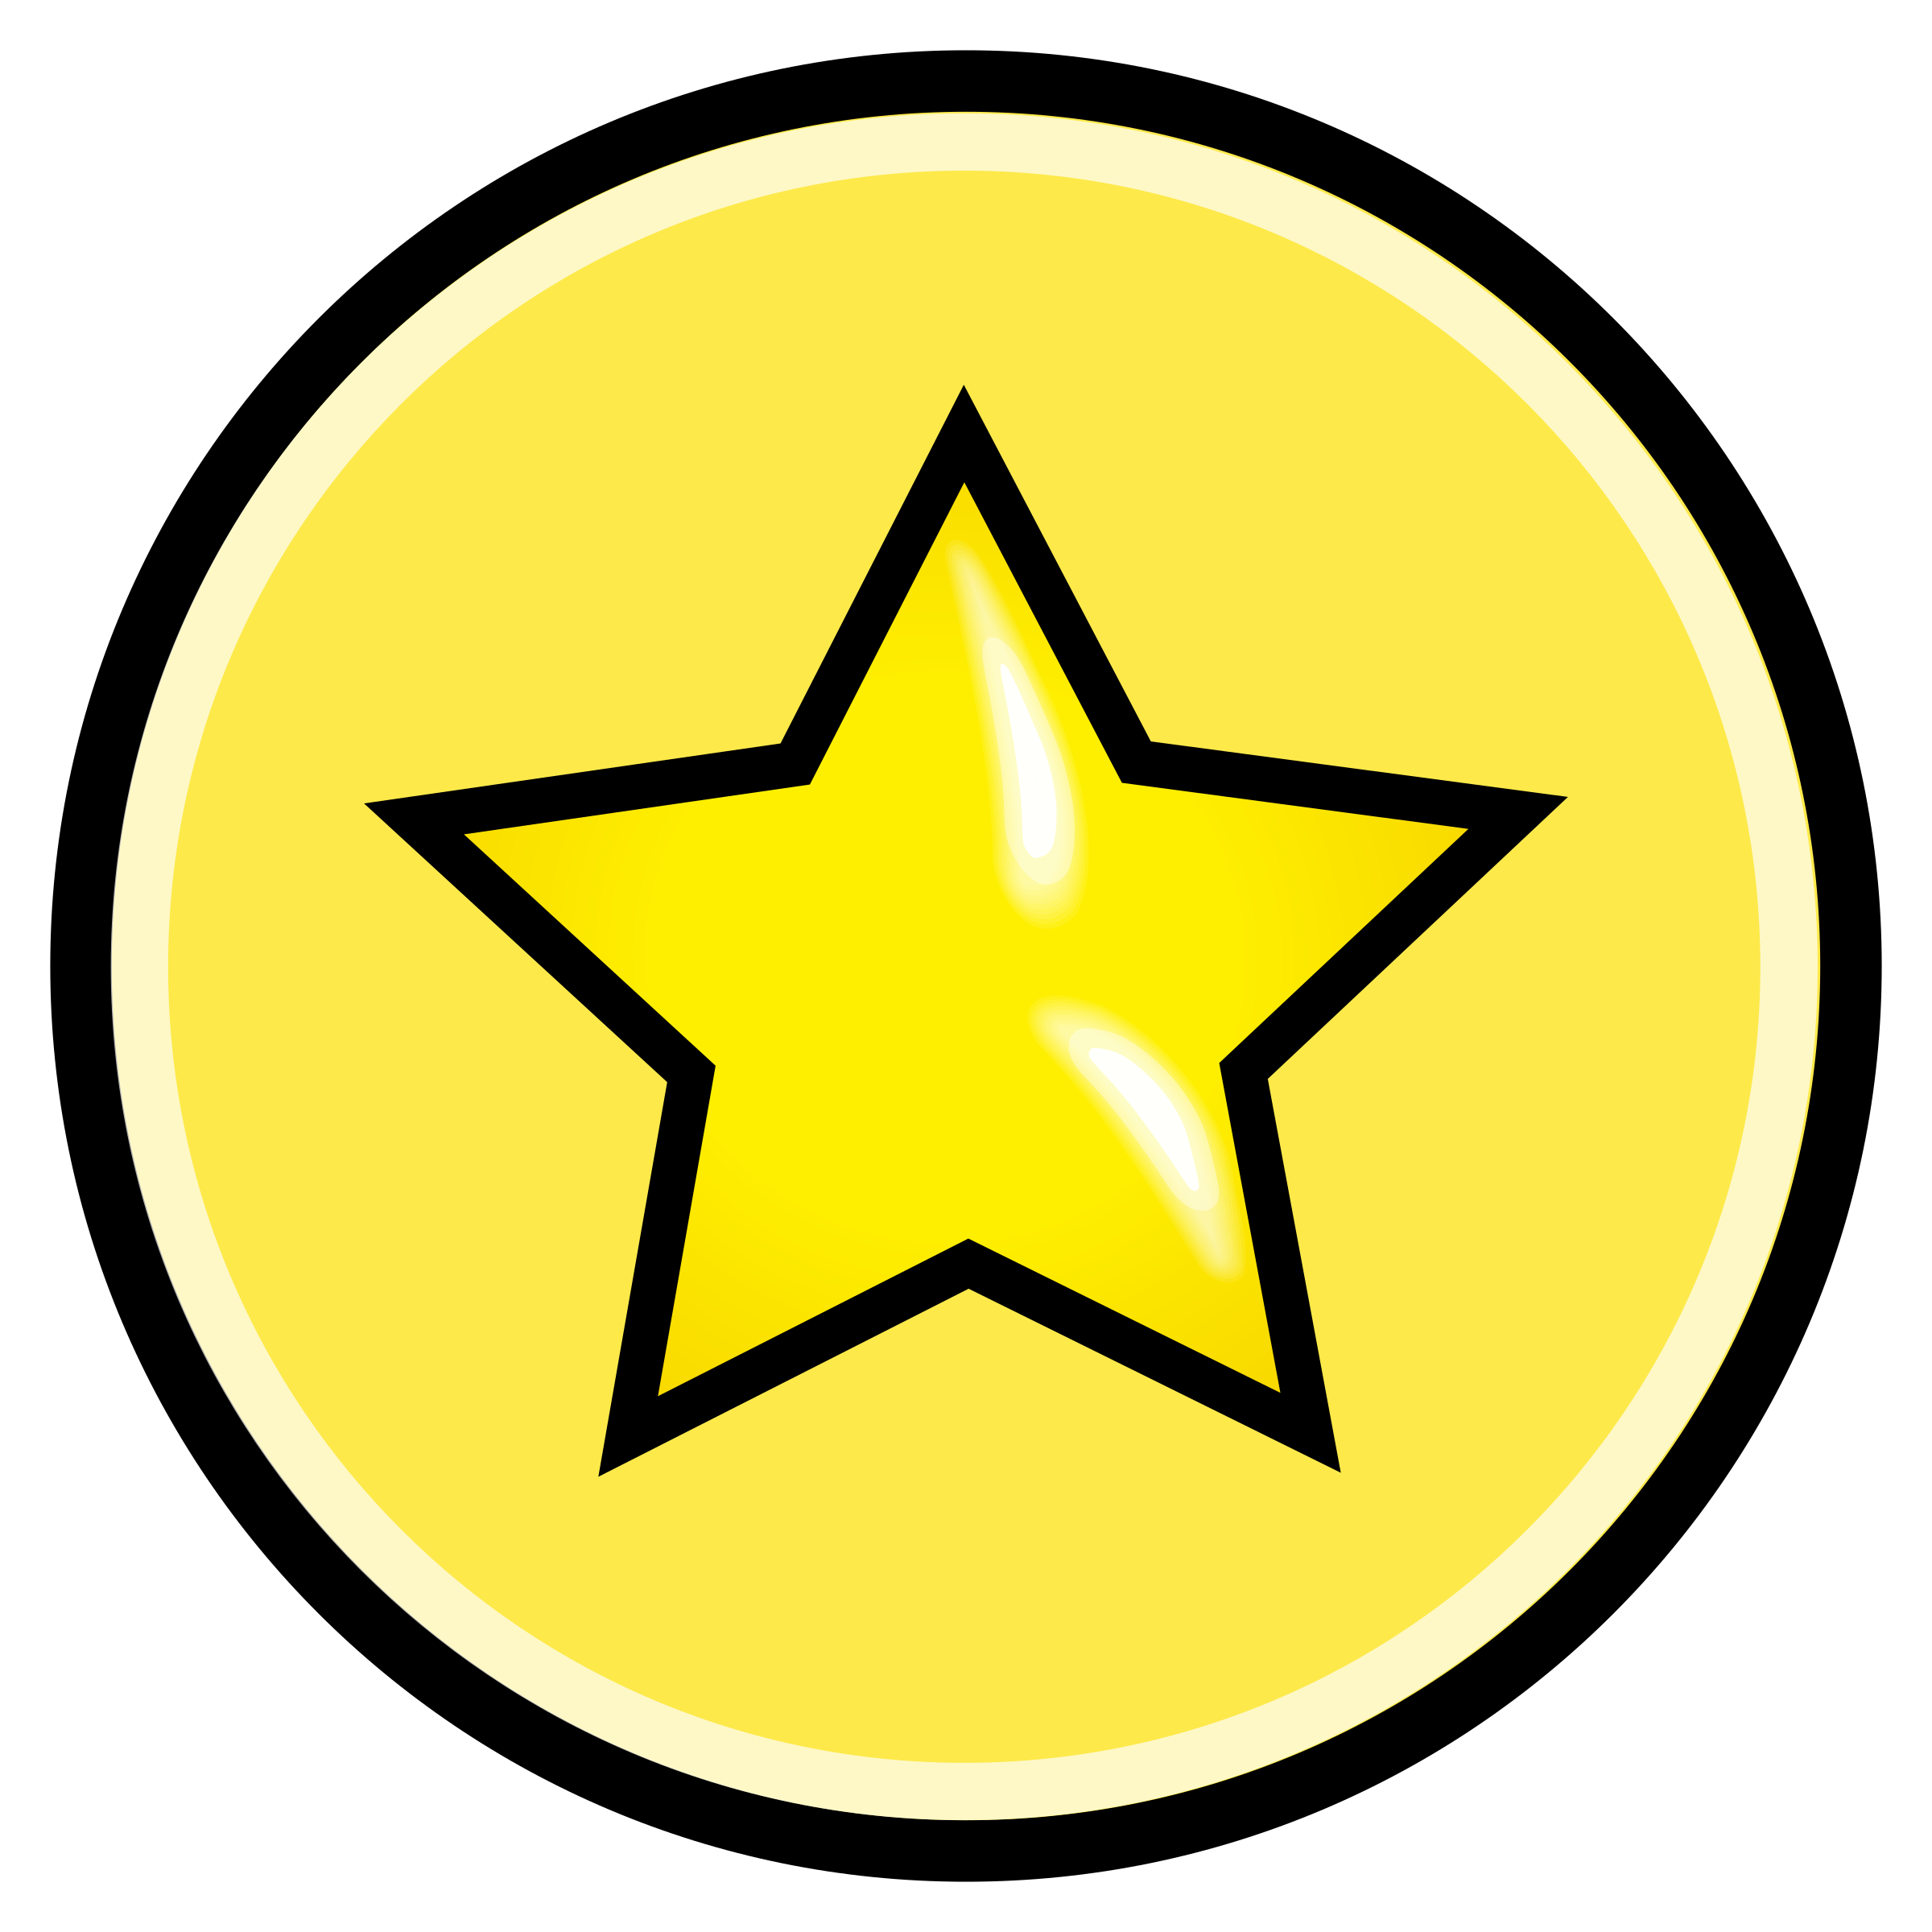 png library Button yellow big image. Review clipart